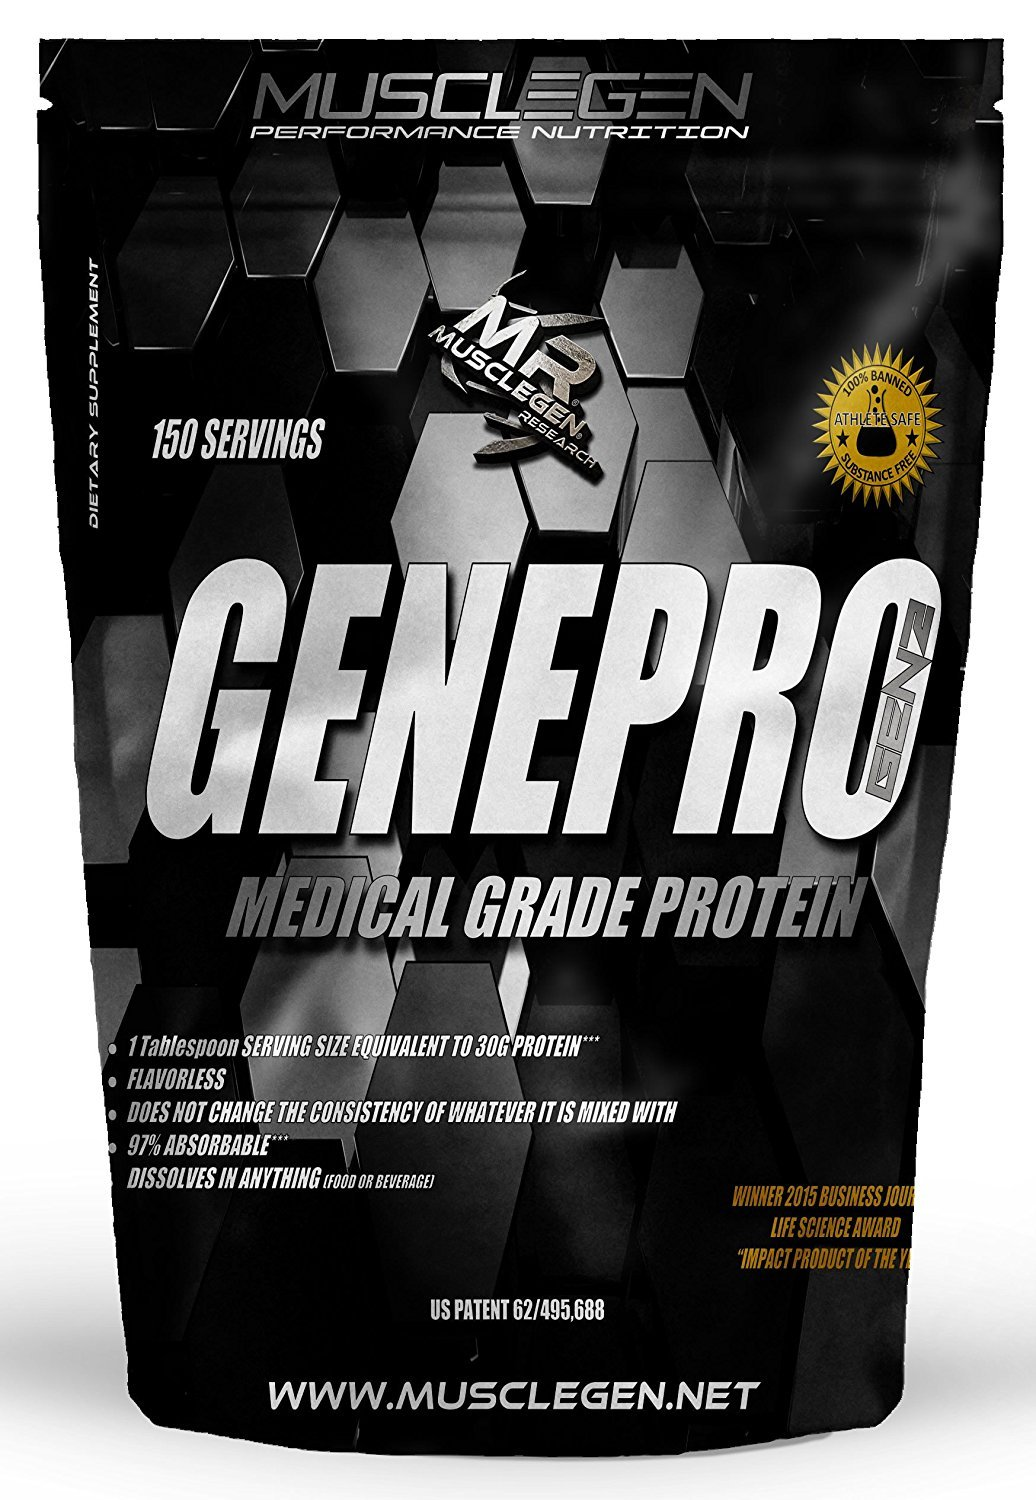 Medical Grade Protein, GENEPRO by Musclegen Research - Premium Protein for Absorption, Muscle Growth & Mix-Abilty. Gluten Free, No Sugar, Flavorless and Mixes with any Drink. Bag varies.